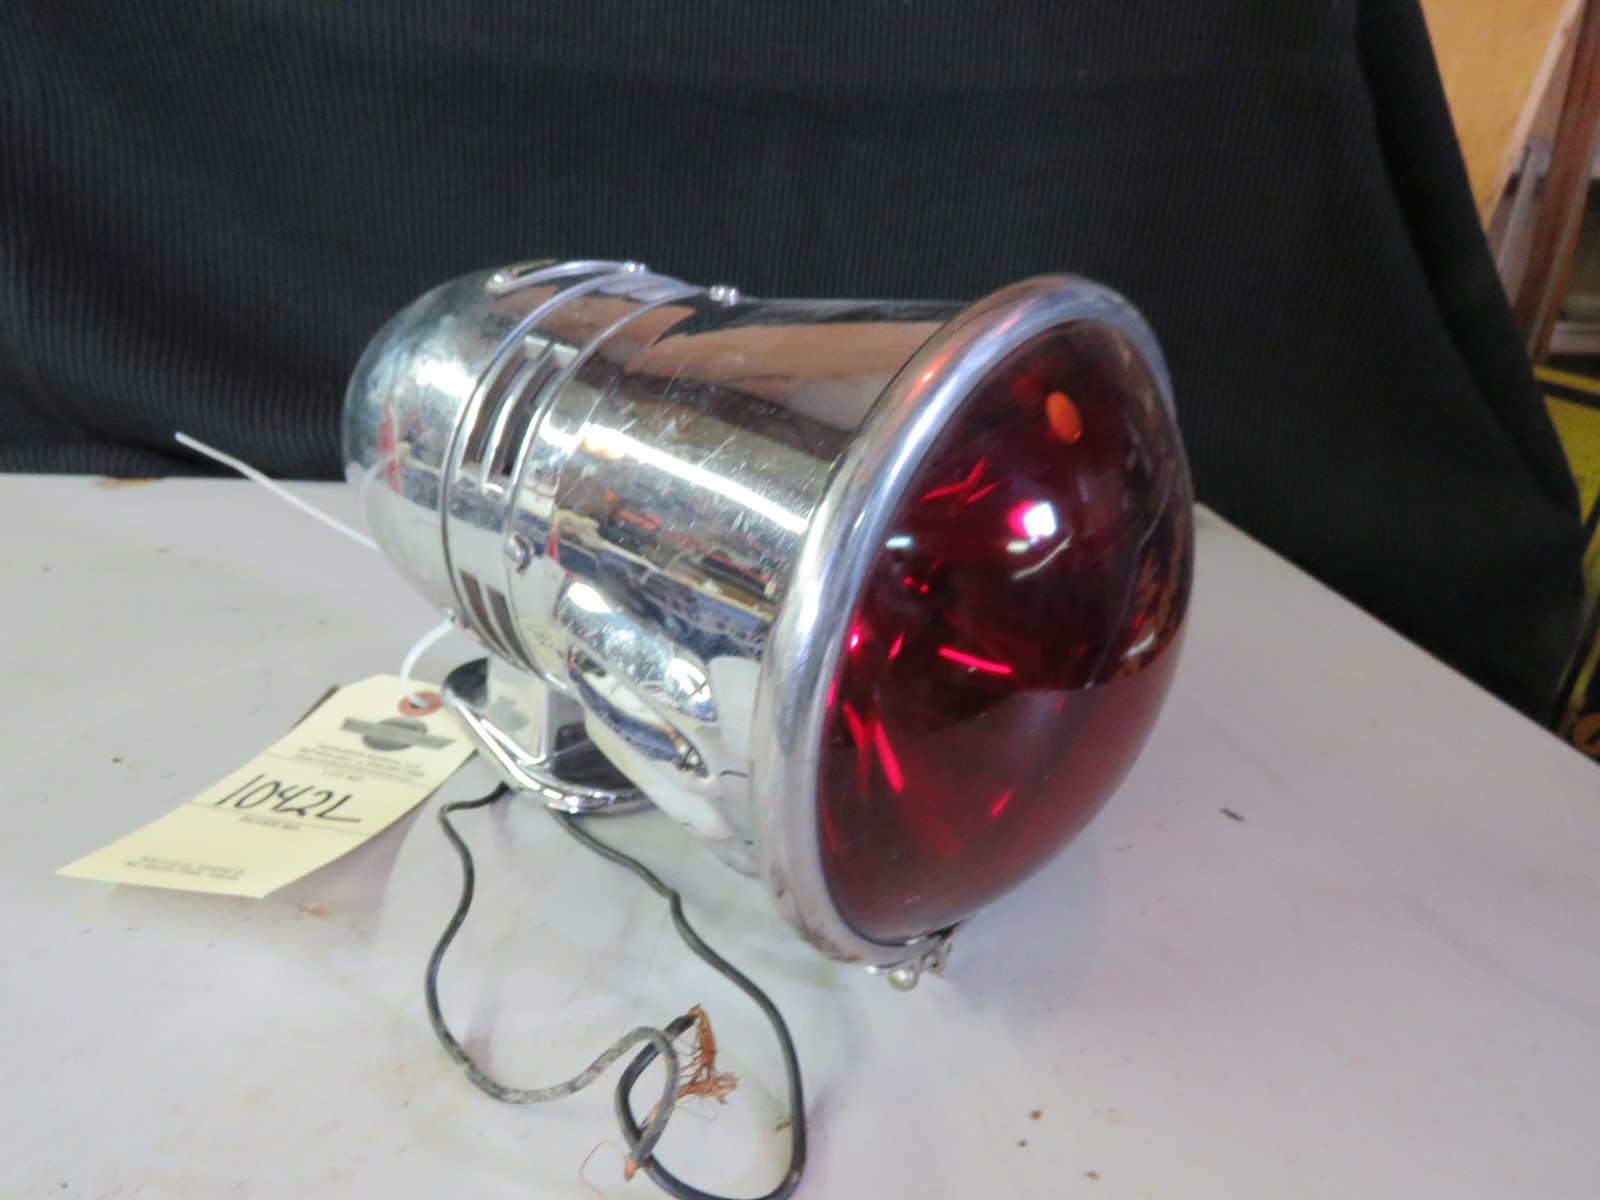 Siren with Red Light - Image 1